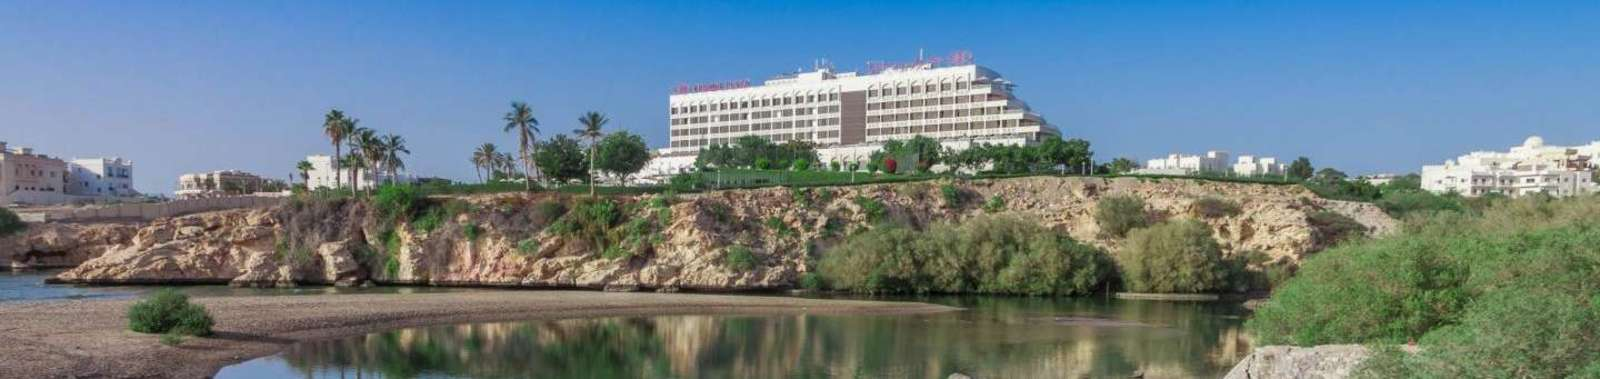 crowne-plaza-muscat-2533165665-2x1